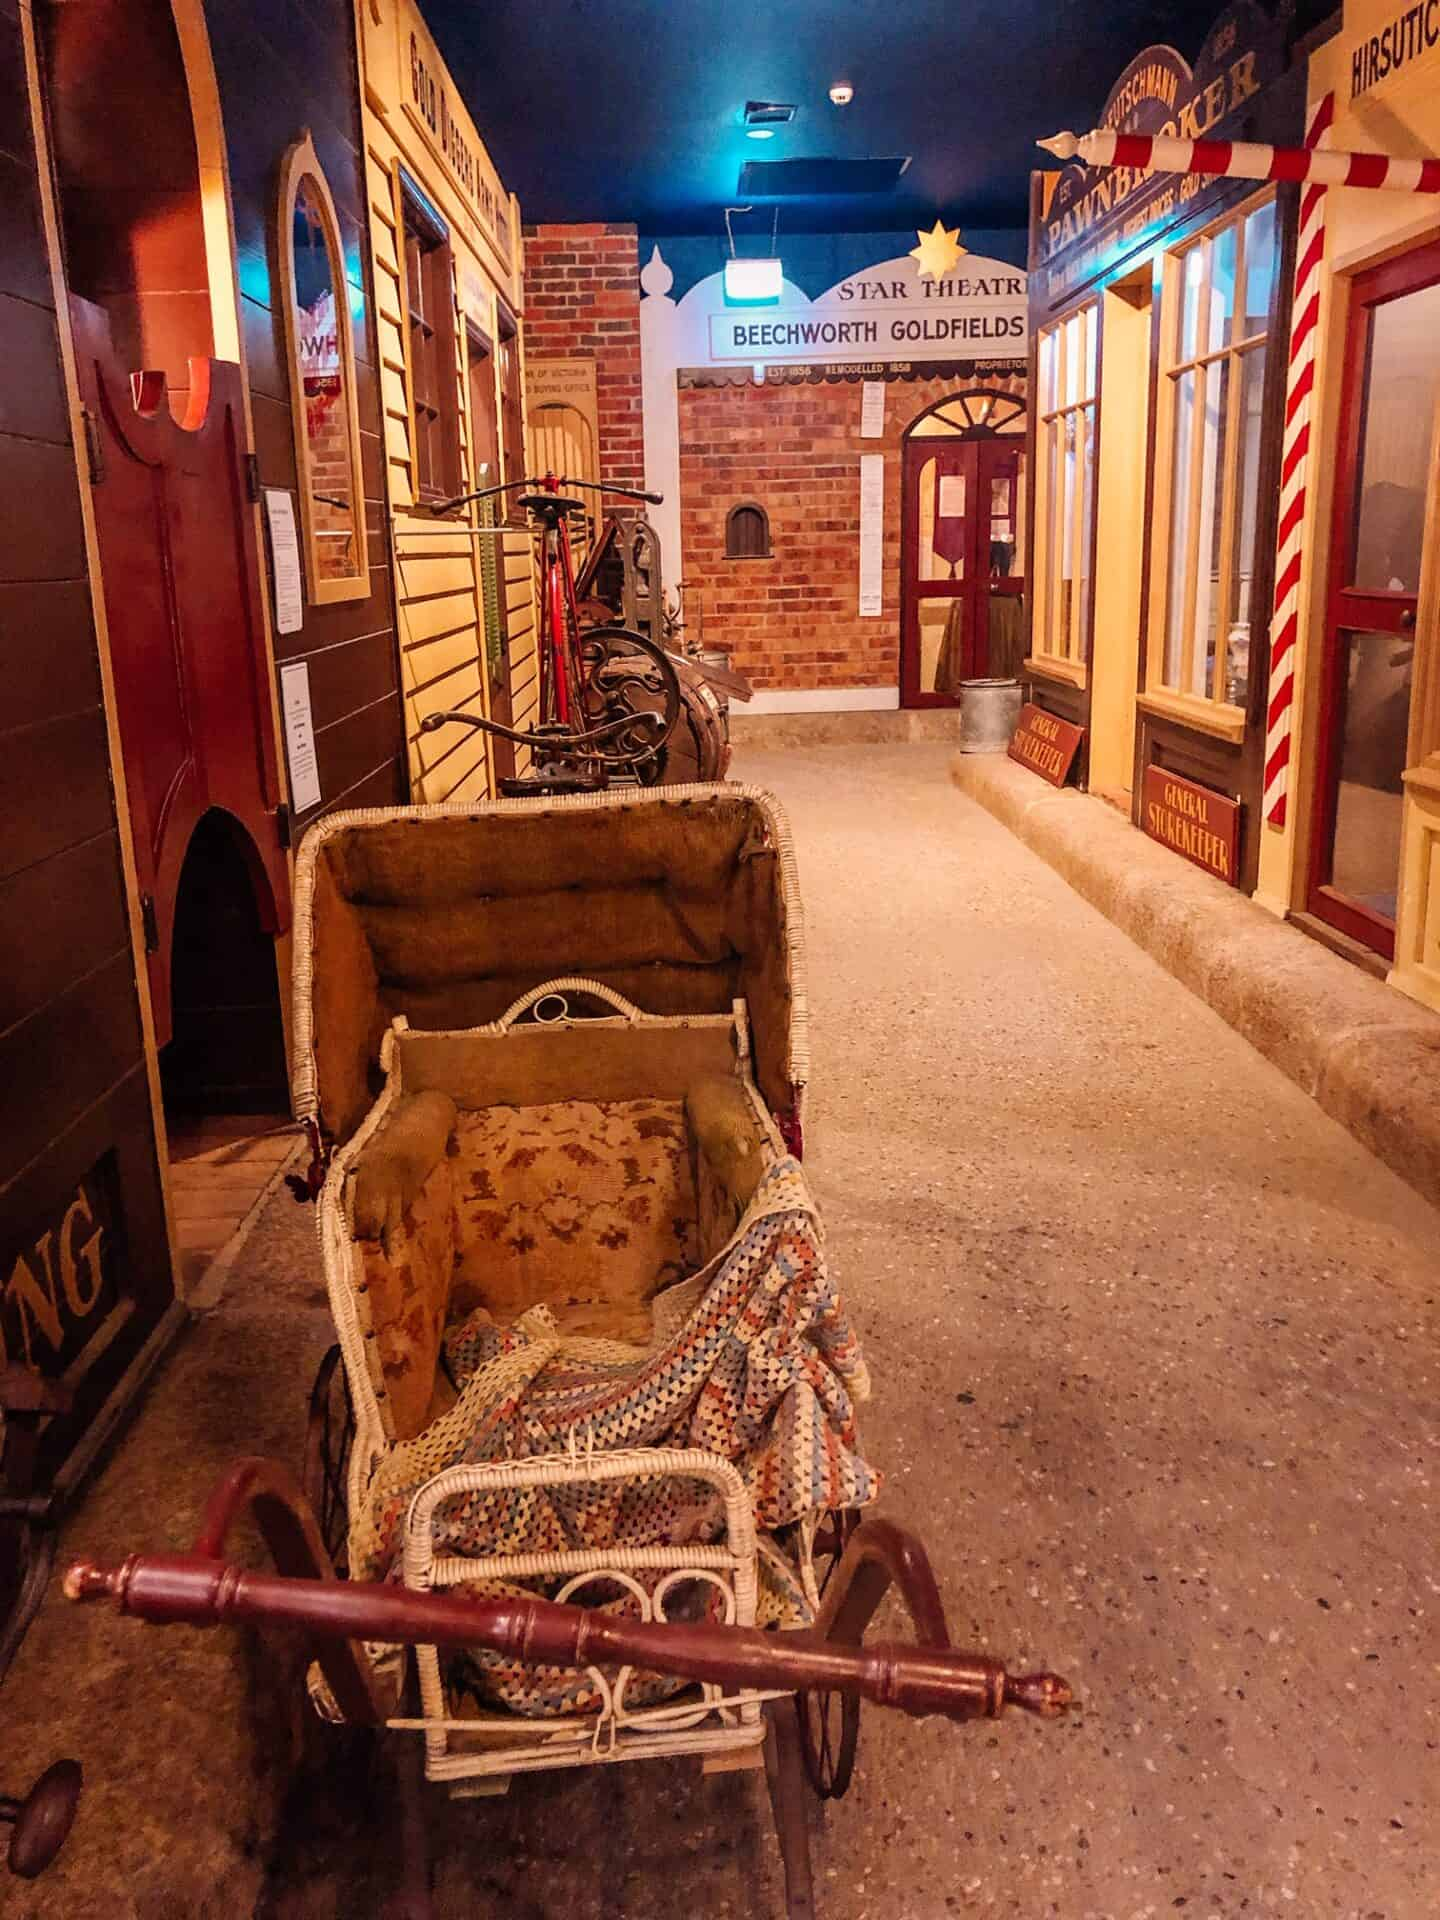 A mock up of a Victorian street. The street is lined with shops and an old pram is parked on the street.